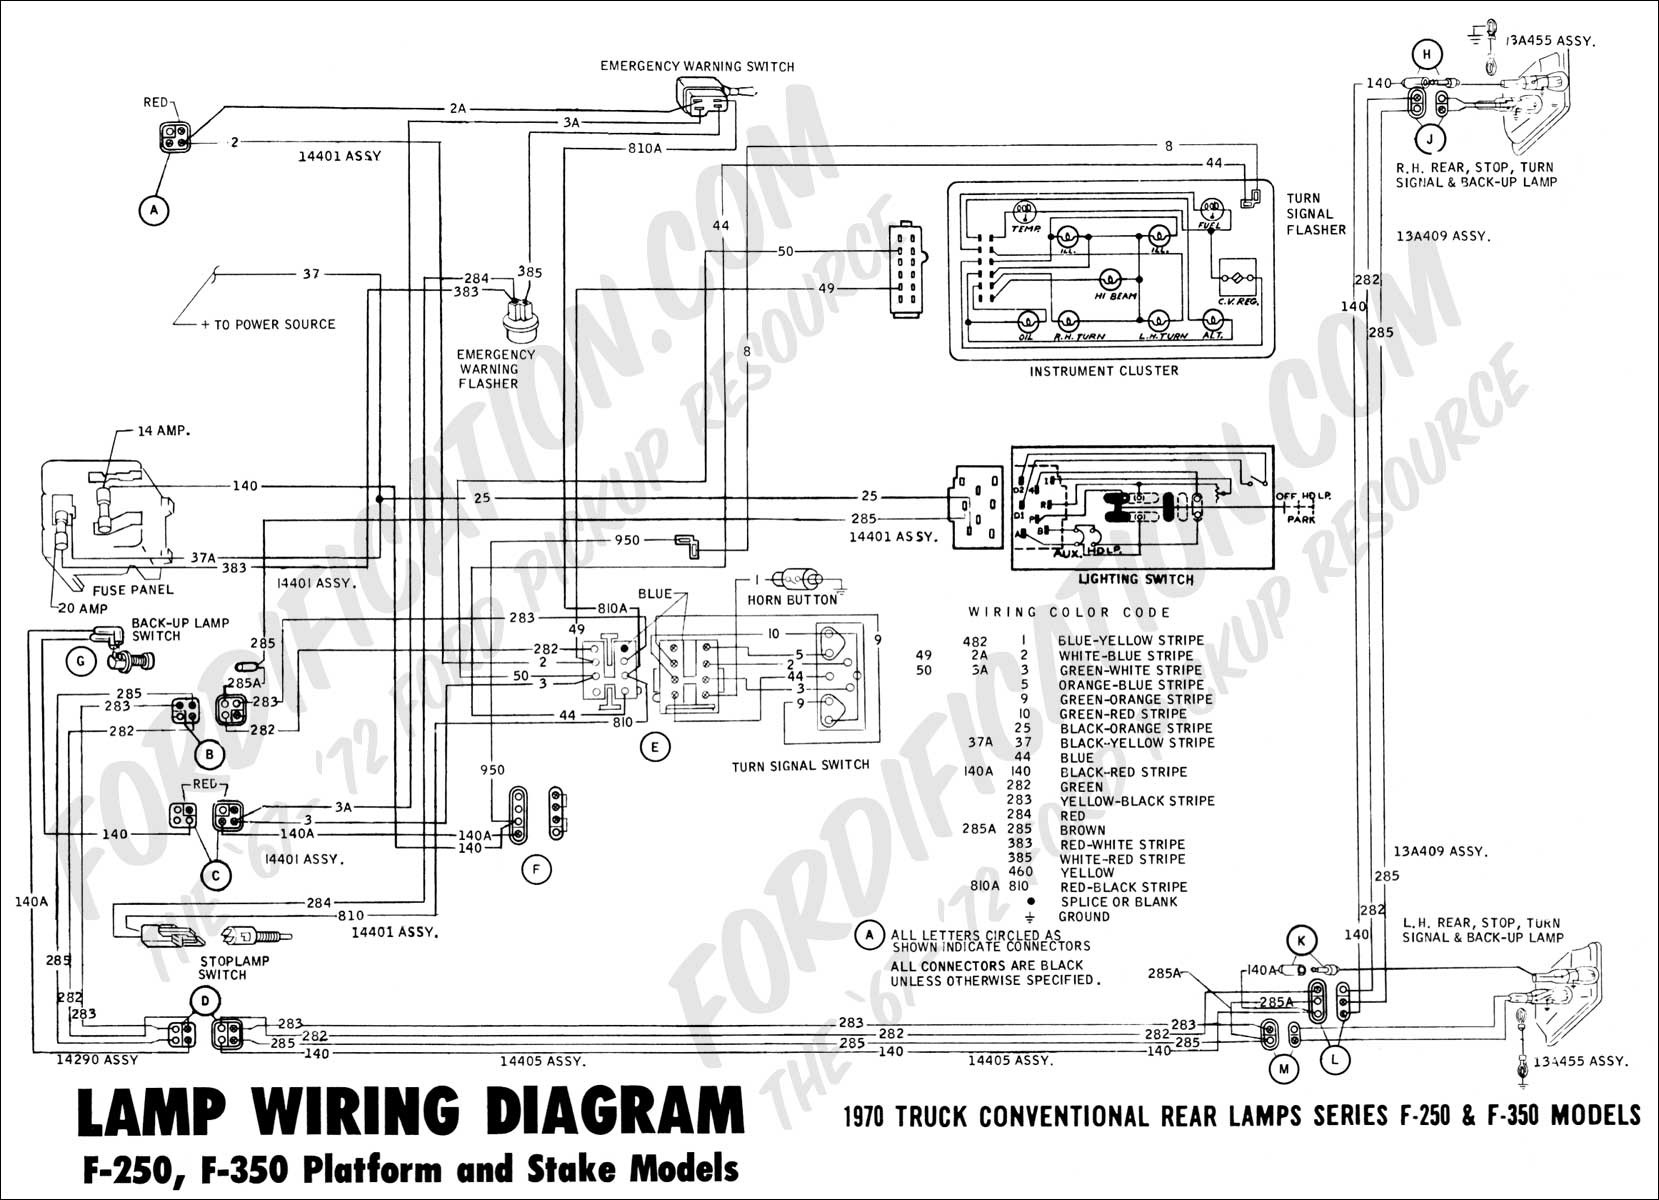 2012 Ford F450 Trailer Wiring Trusted Diagram F350 F 450 Diagrams Light Auto Electrical Fuel Gauge